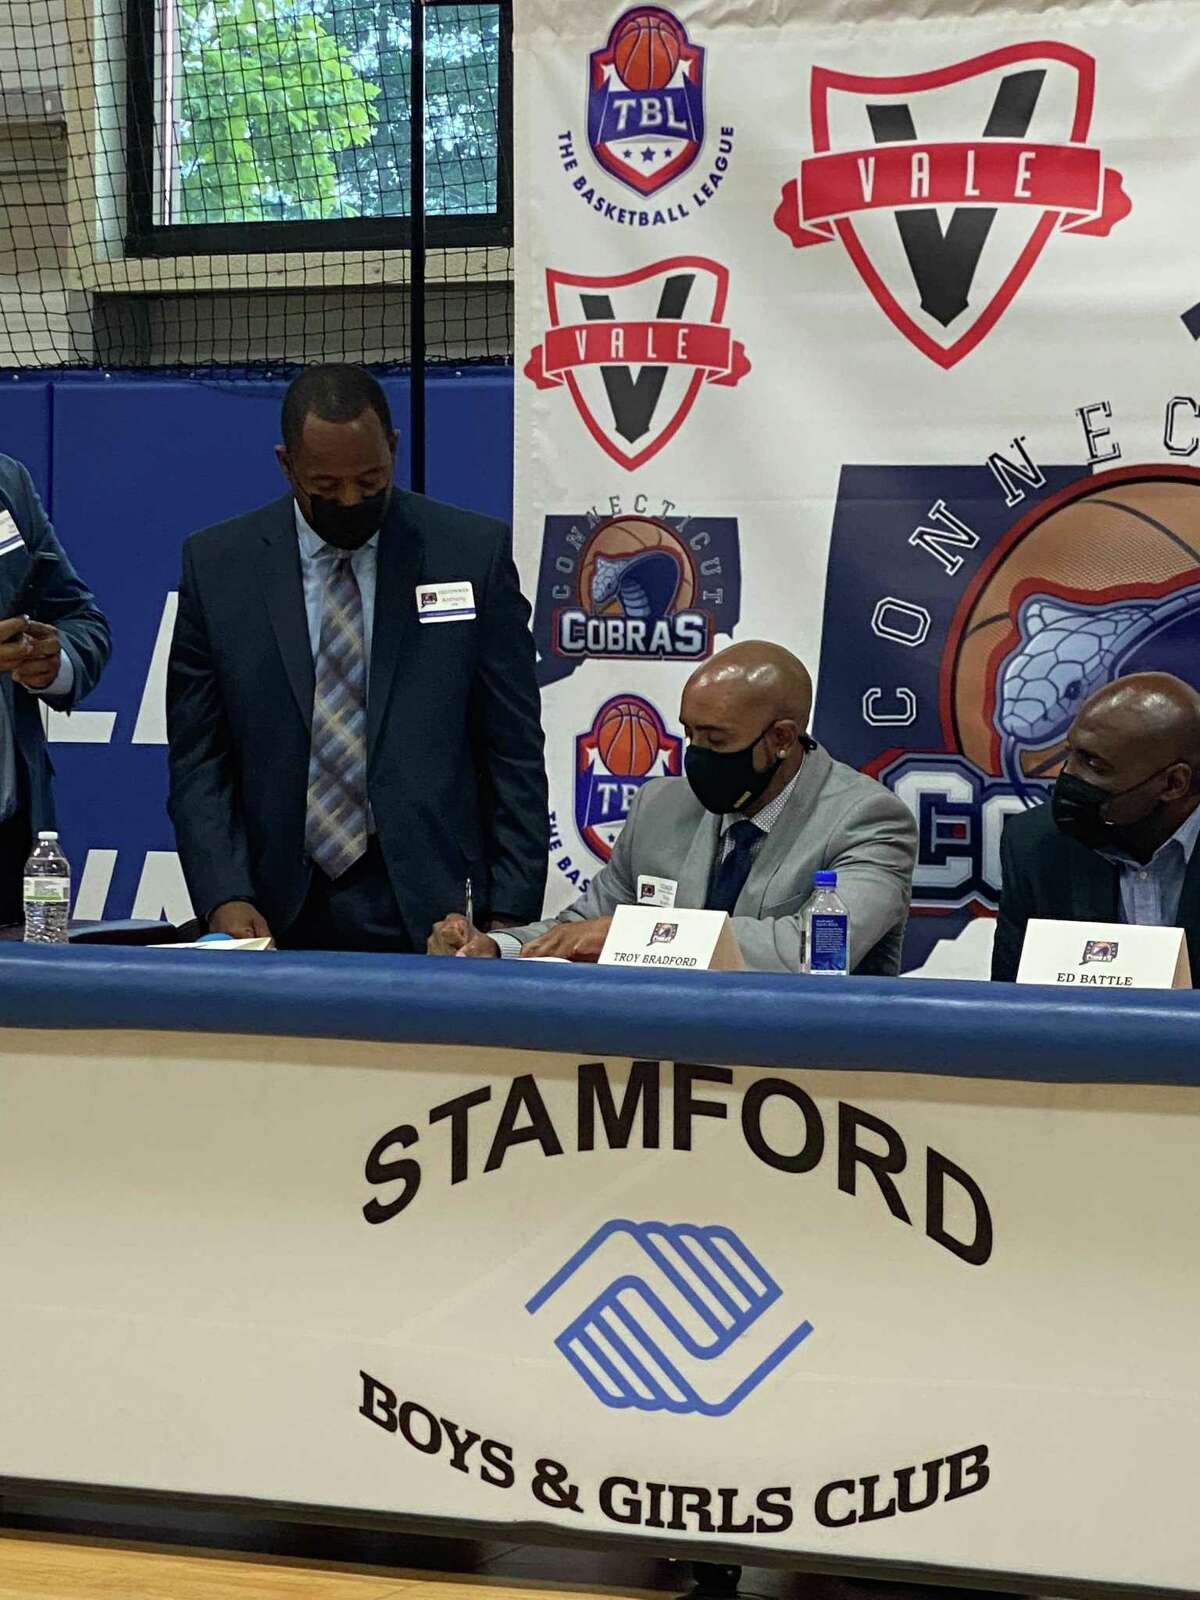 Troy Bradford, center, signs a contract to become the first basketball coach of The Connecticut Cobras of The Basketball League on August 16 at the Boys & Girls Club in Stamford. At left is team owner Anthony Hill. At right is team president Ed Battle.